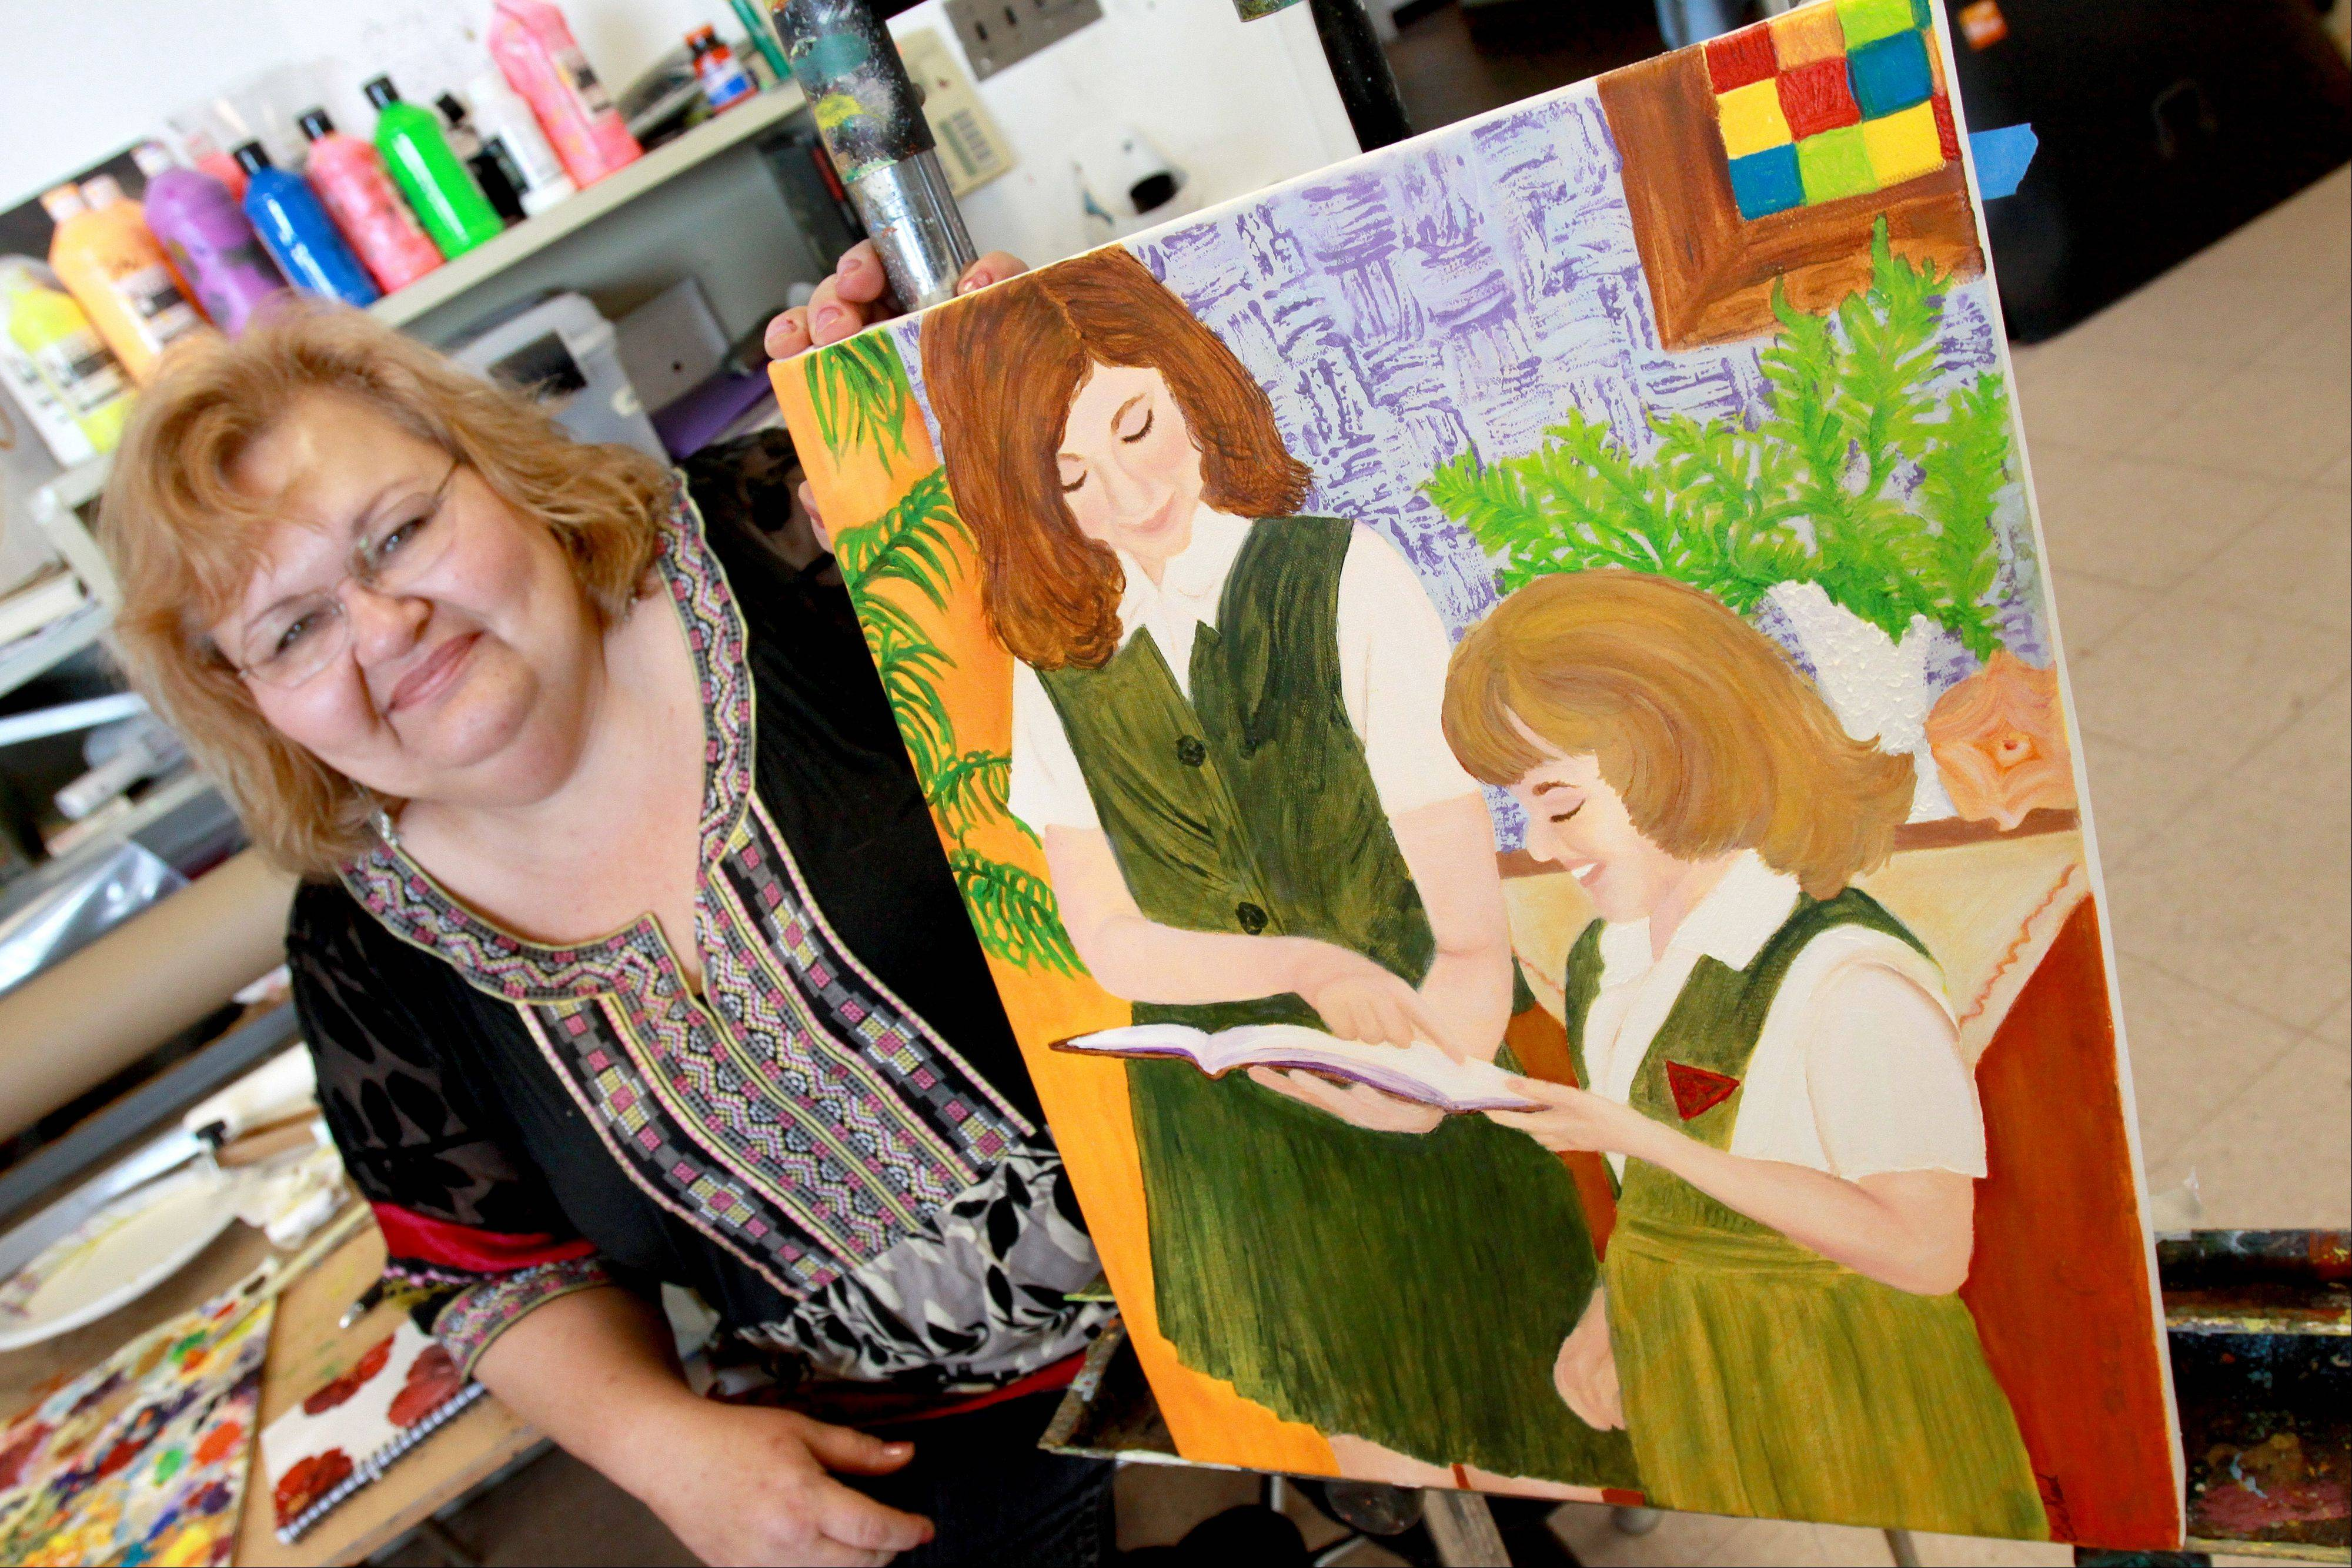 Eve Reed of Lombard, who attended Maternity B.V.M., painted a picture of her and her sister in their school uniforms.